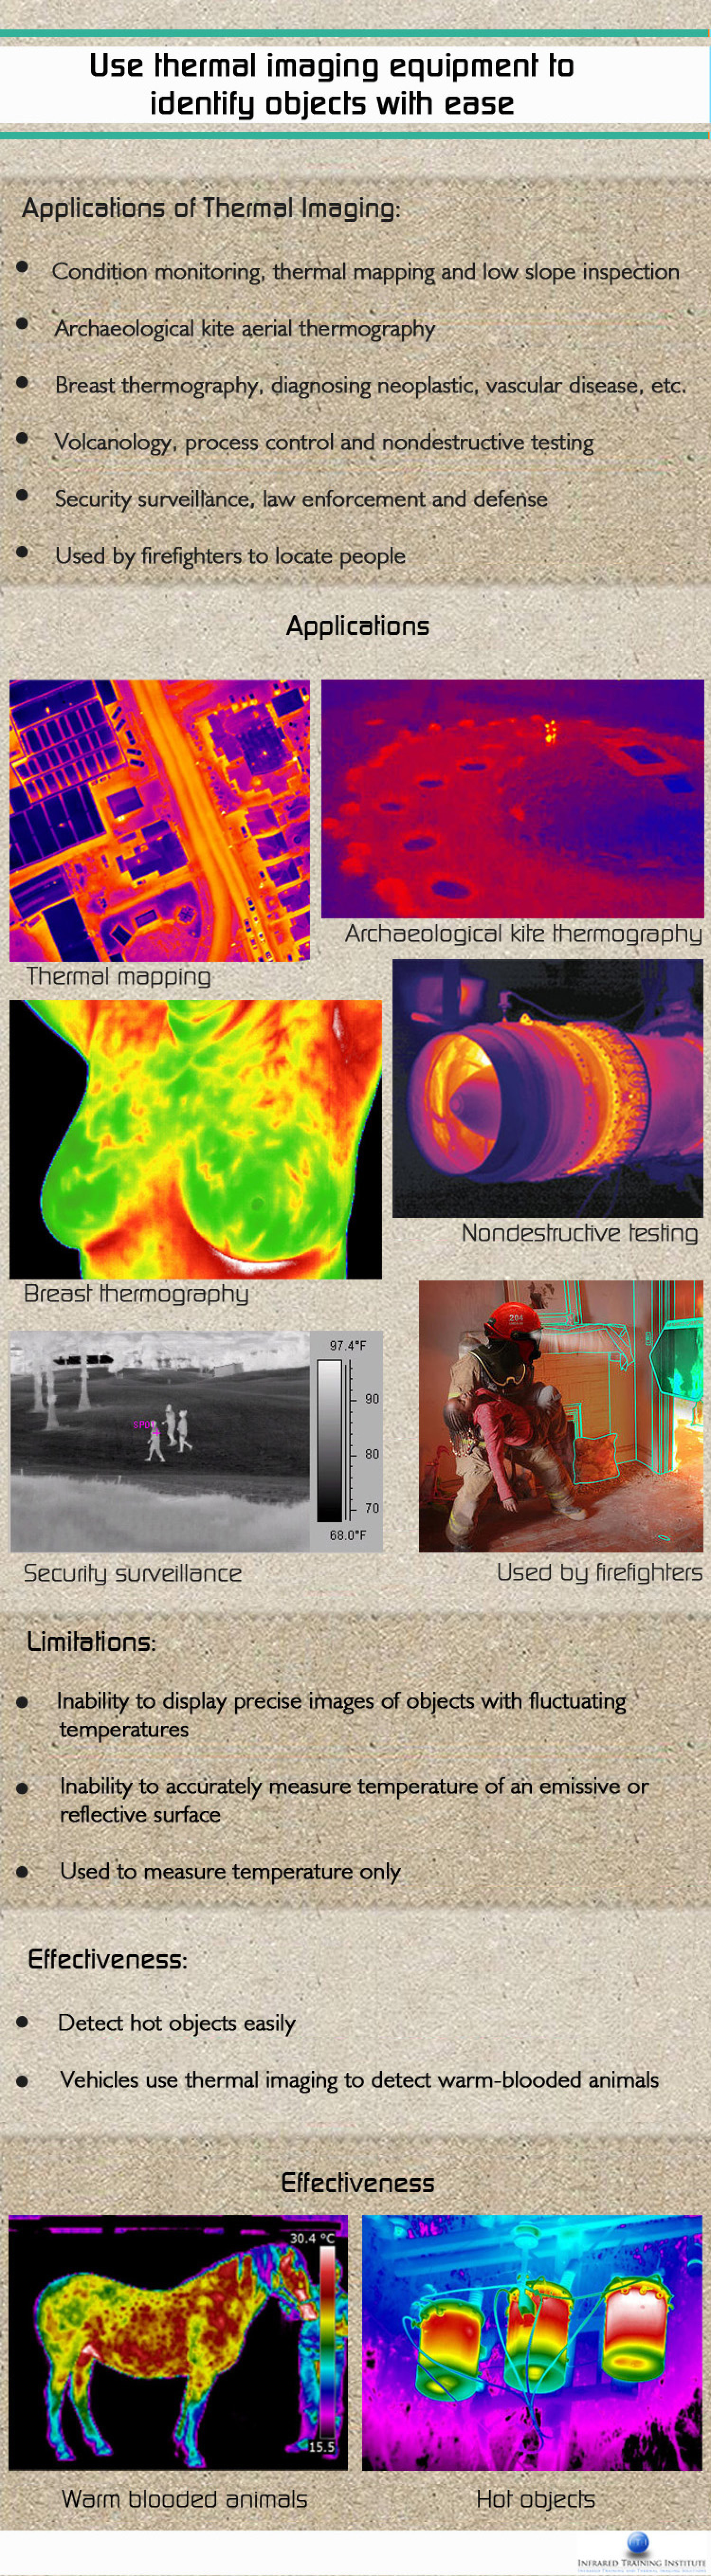 Use thermal imaging equipment to identify objects with ease Infographic